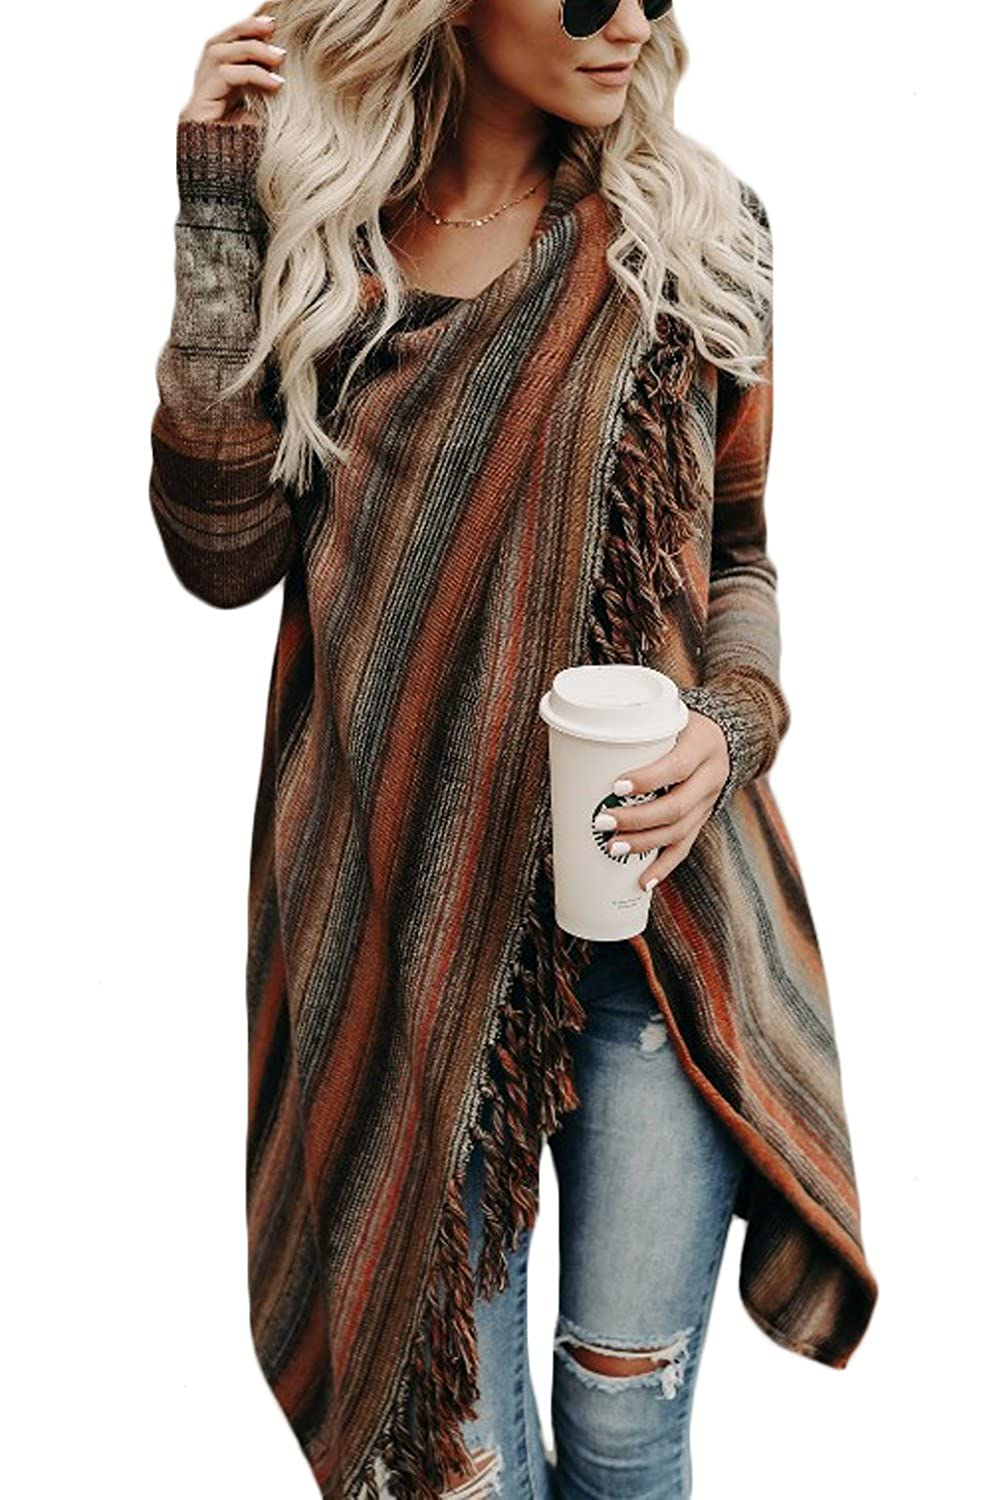 Jumojufol Womens Cardigan Sweaters Tassel Knit 1 Button Stripes Wrap Outwear